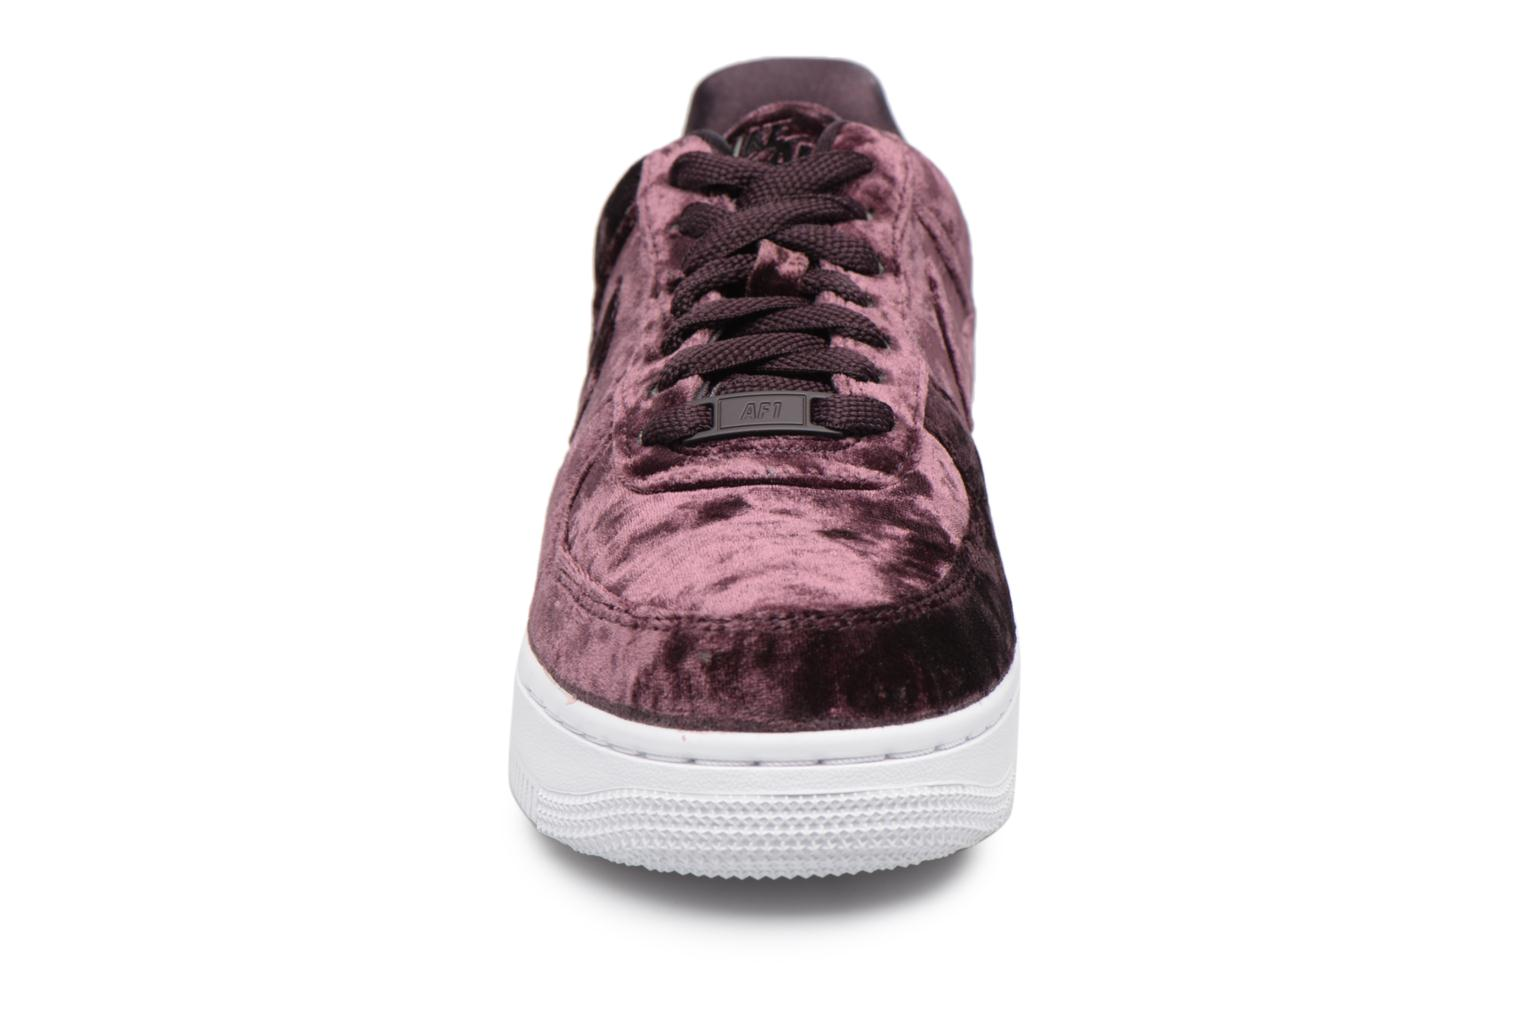 Wmns Air Force 1 '07 Prm Port Wine/Port Wine-Summit White